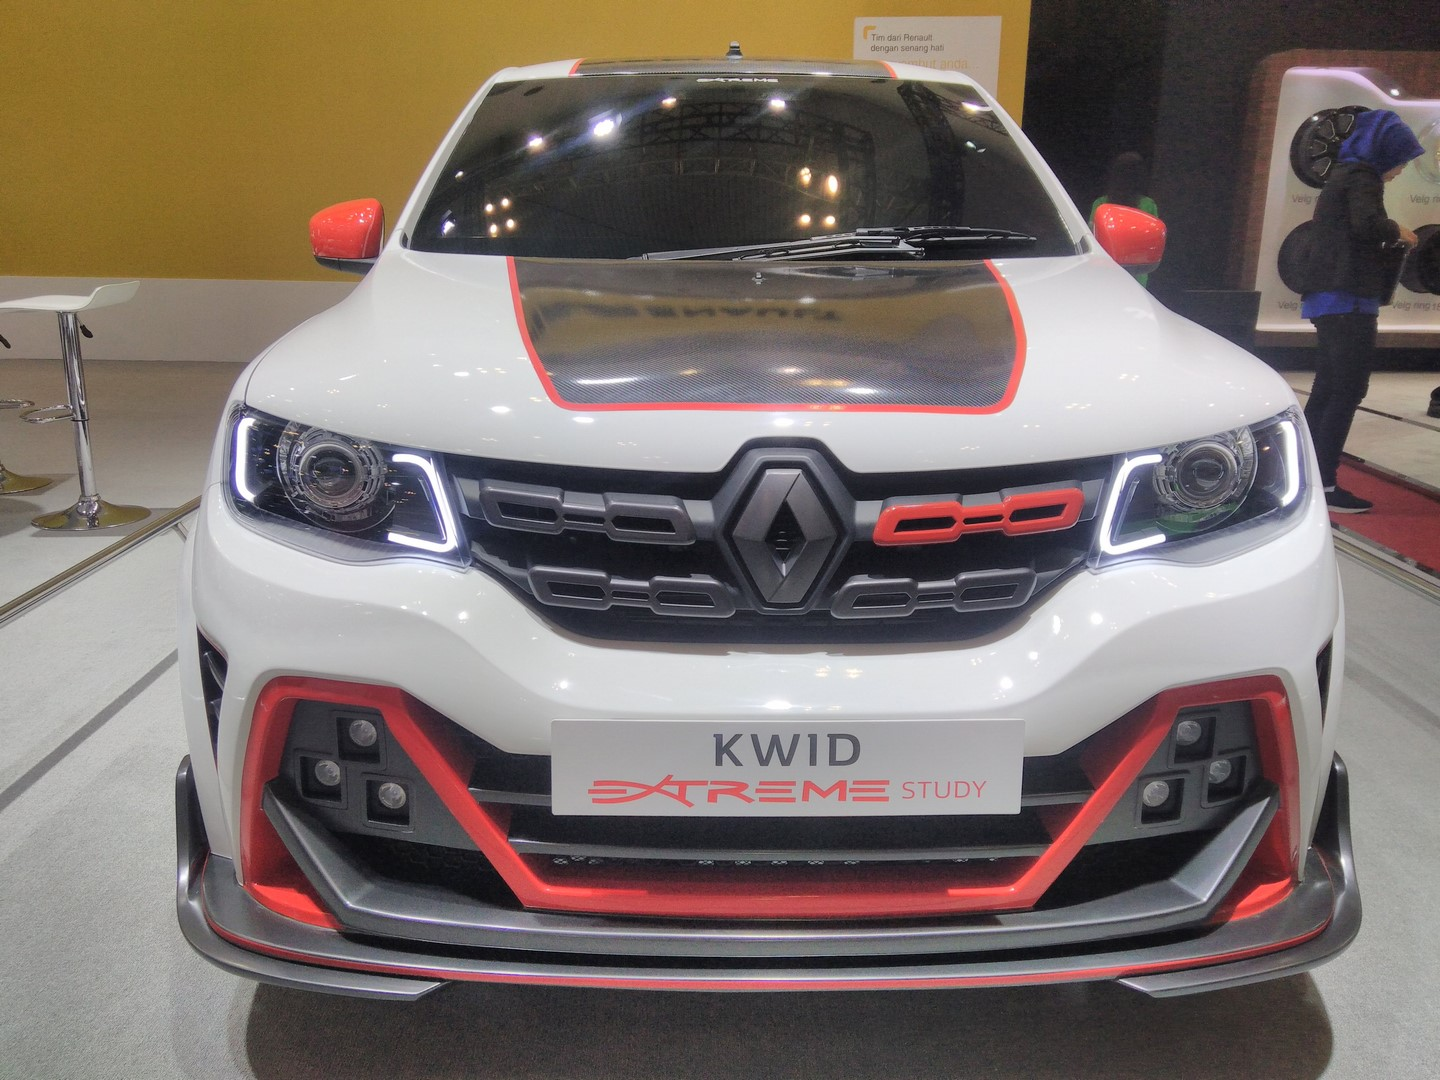 Renault-Kwid-Extreme-at-GIIAS-2017-front-view